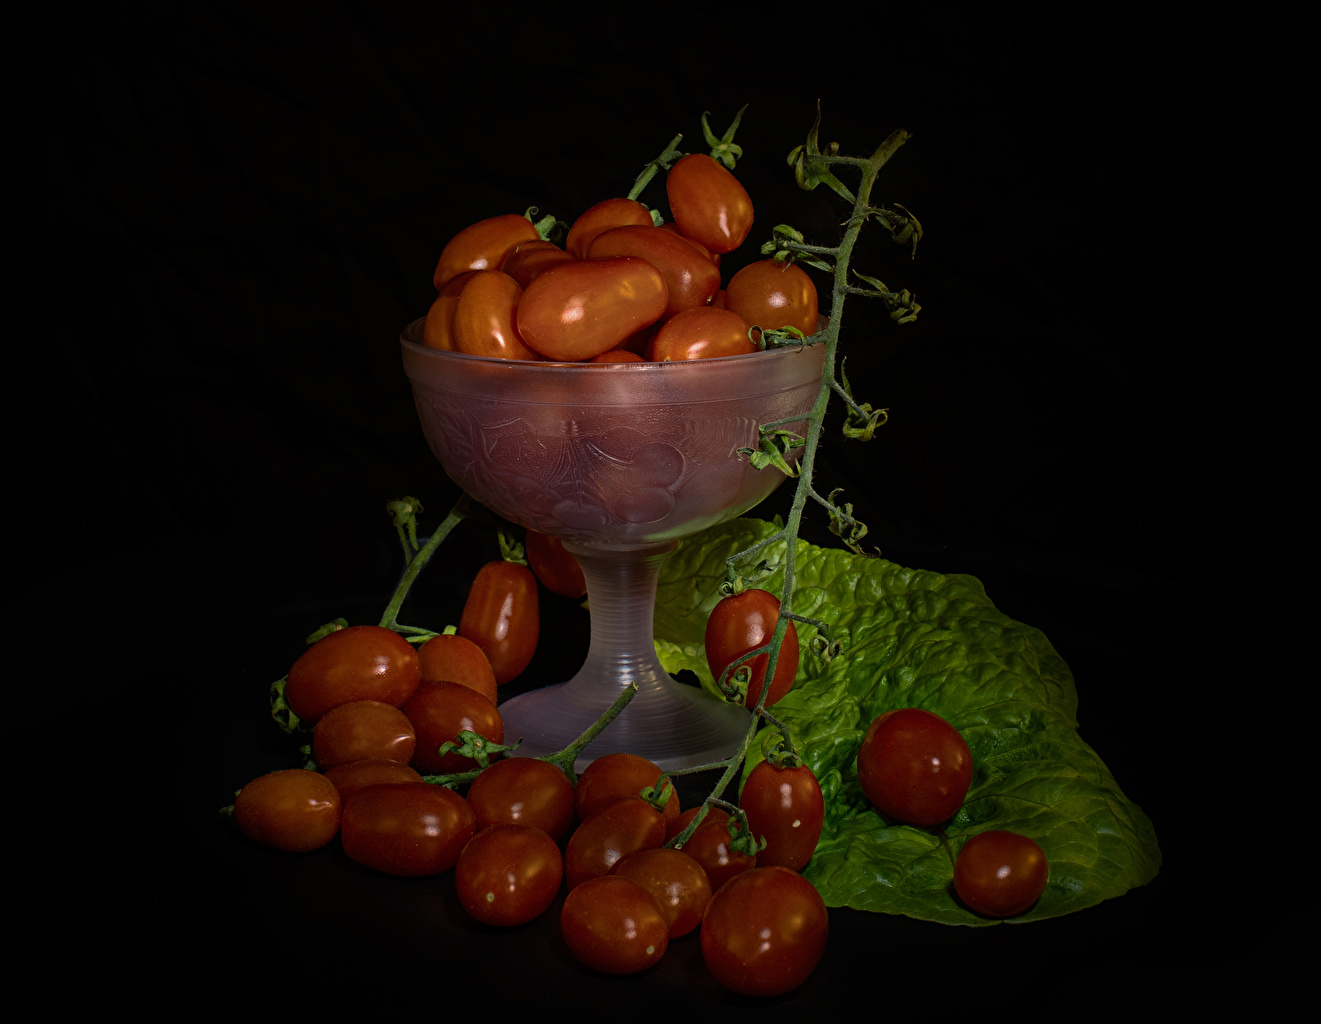 Pictures Tomatoes Food Branches Black background